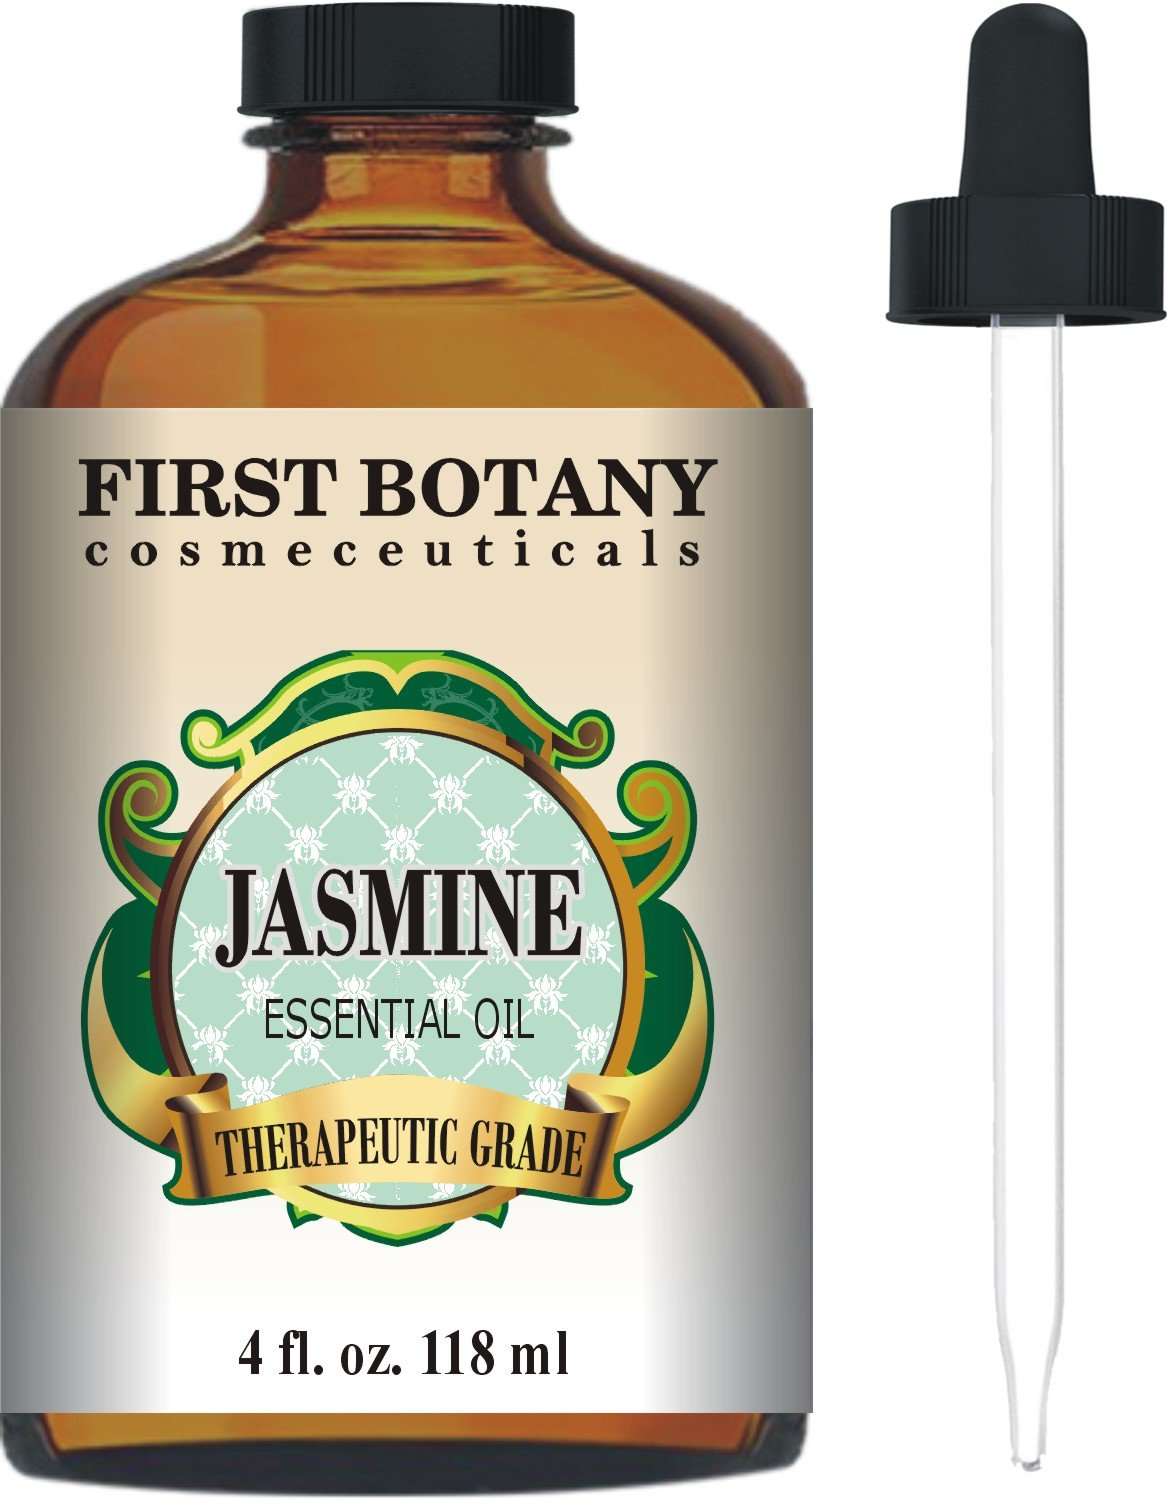 Jasmine Essential Oil 4 fl. oz. With a Glass Dropper - Premium Quality & Therapeutic Grade - Ideal for Aromatherapy & Maintaining Healthy Skin